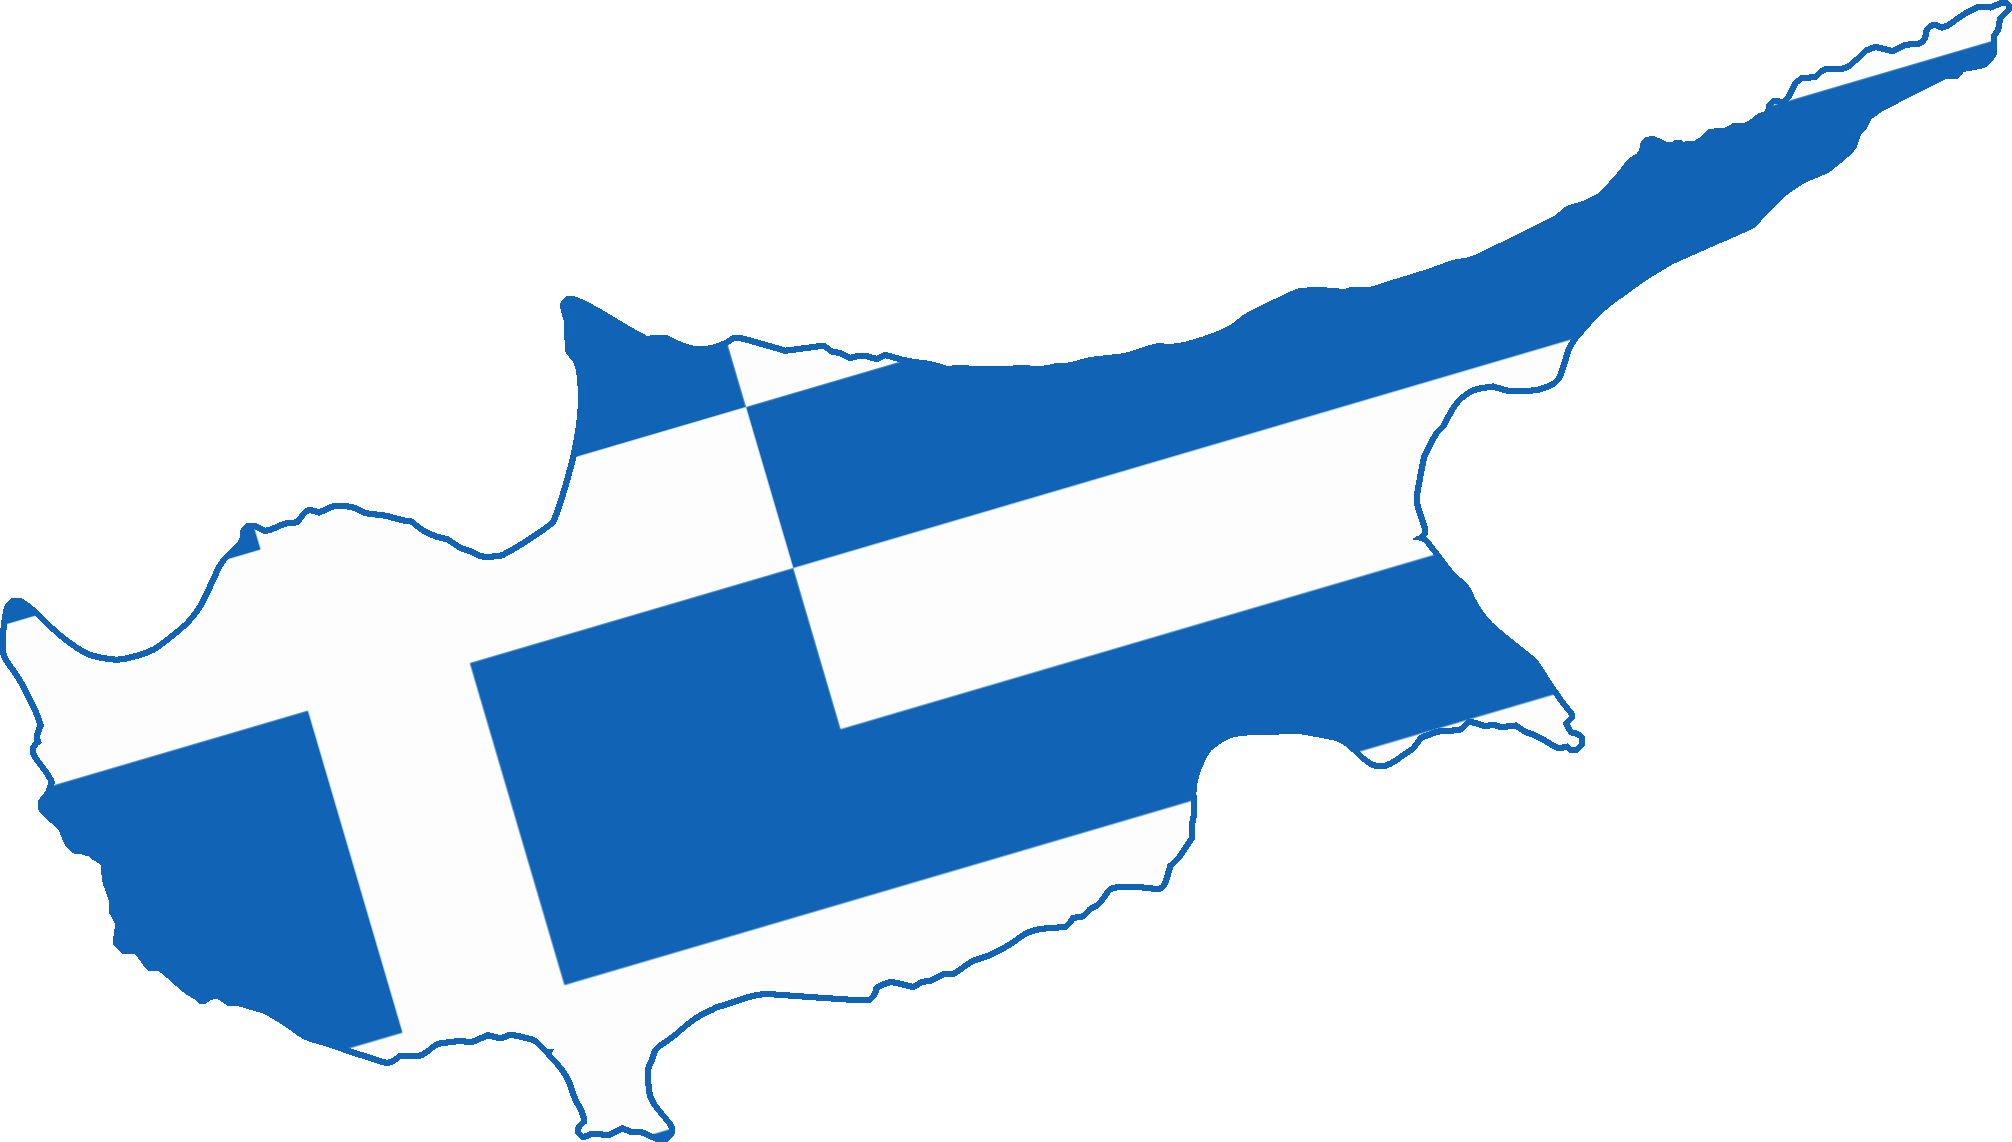 FileFlag Map Of The Cyprus Greecepng Wikimedia Commons - Cyprus map png